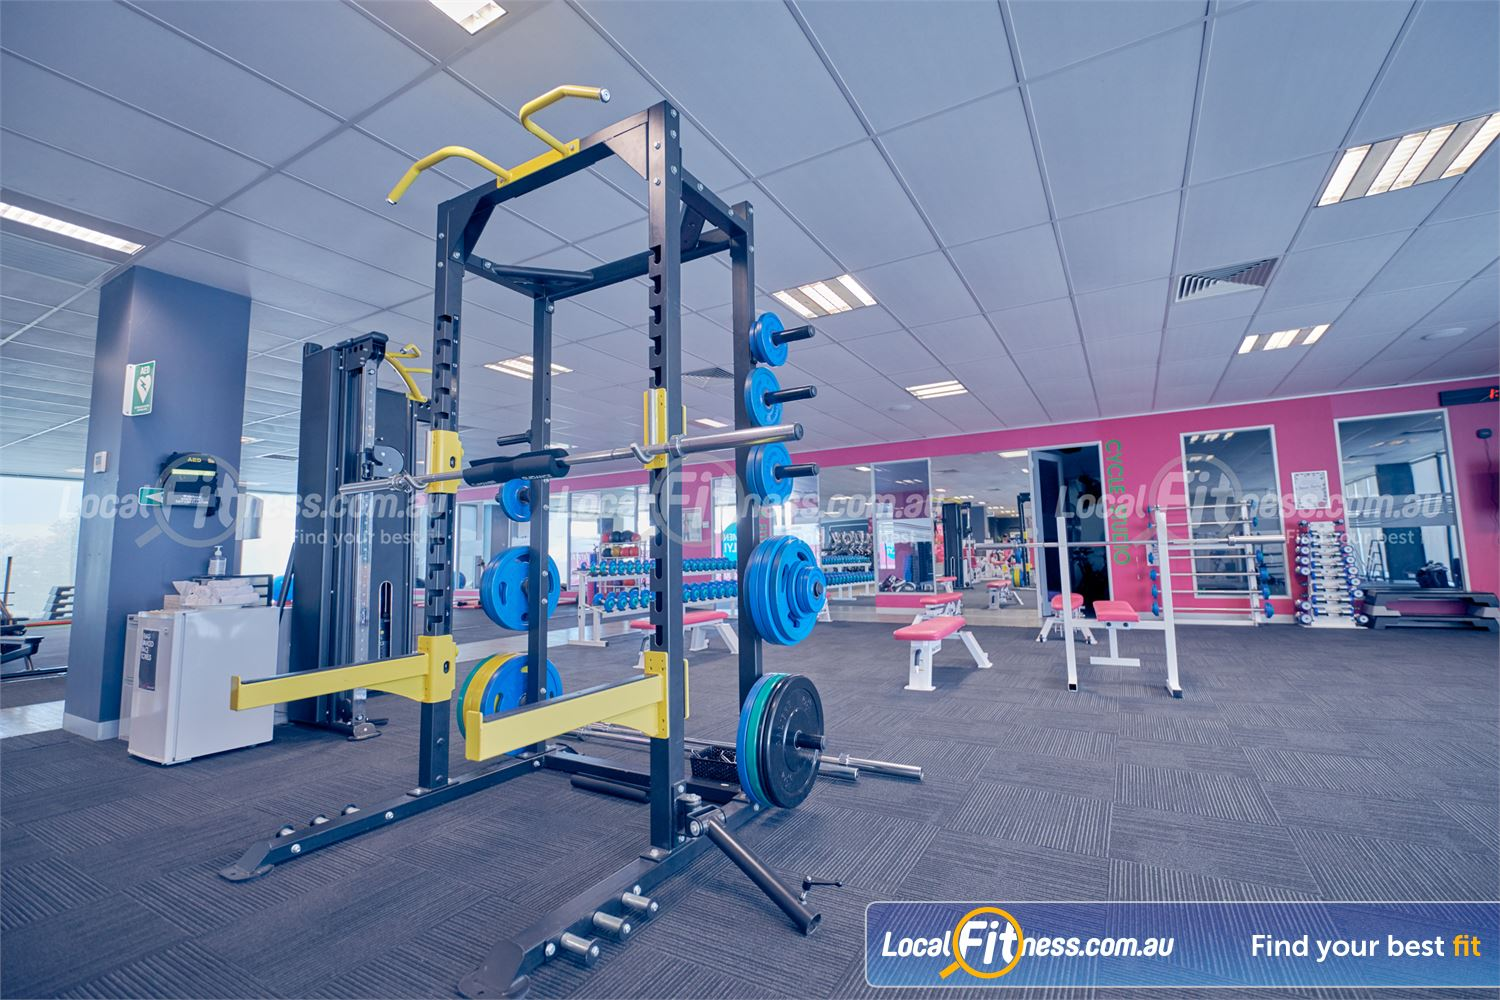 Fernwood Fitness Cairnlea Get into strength training for women in Cairnlea with our heavy duty power rack.